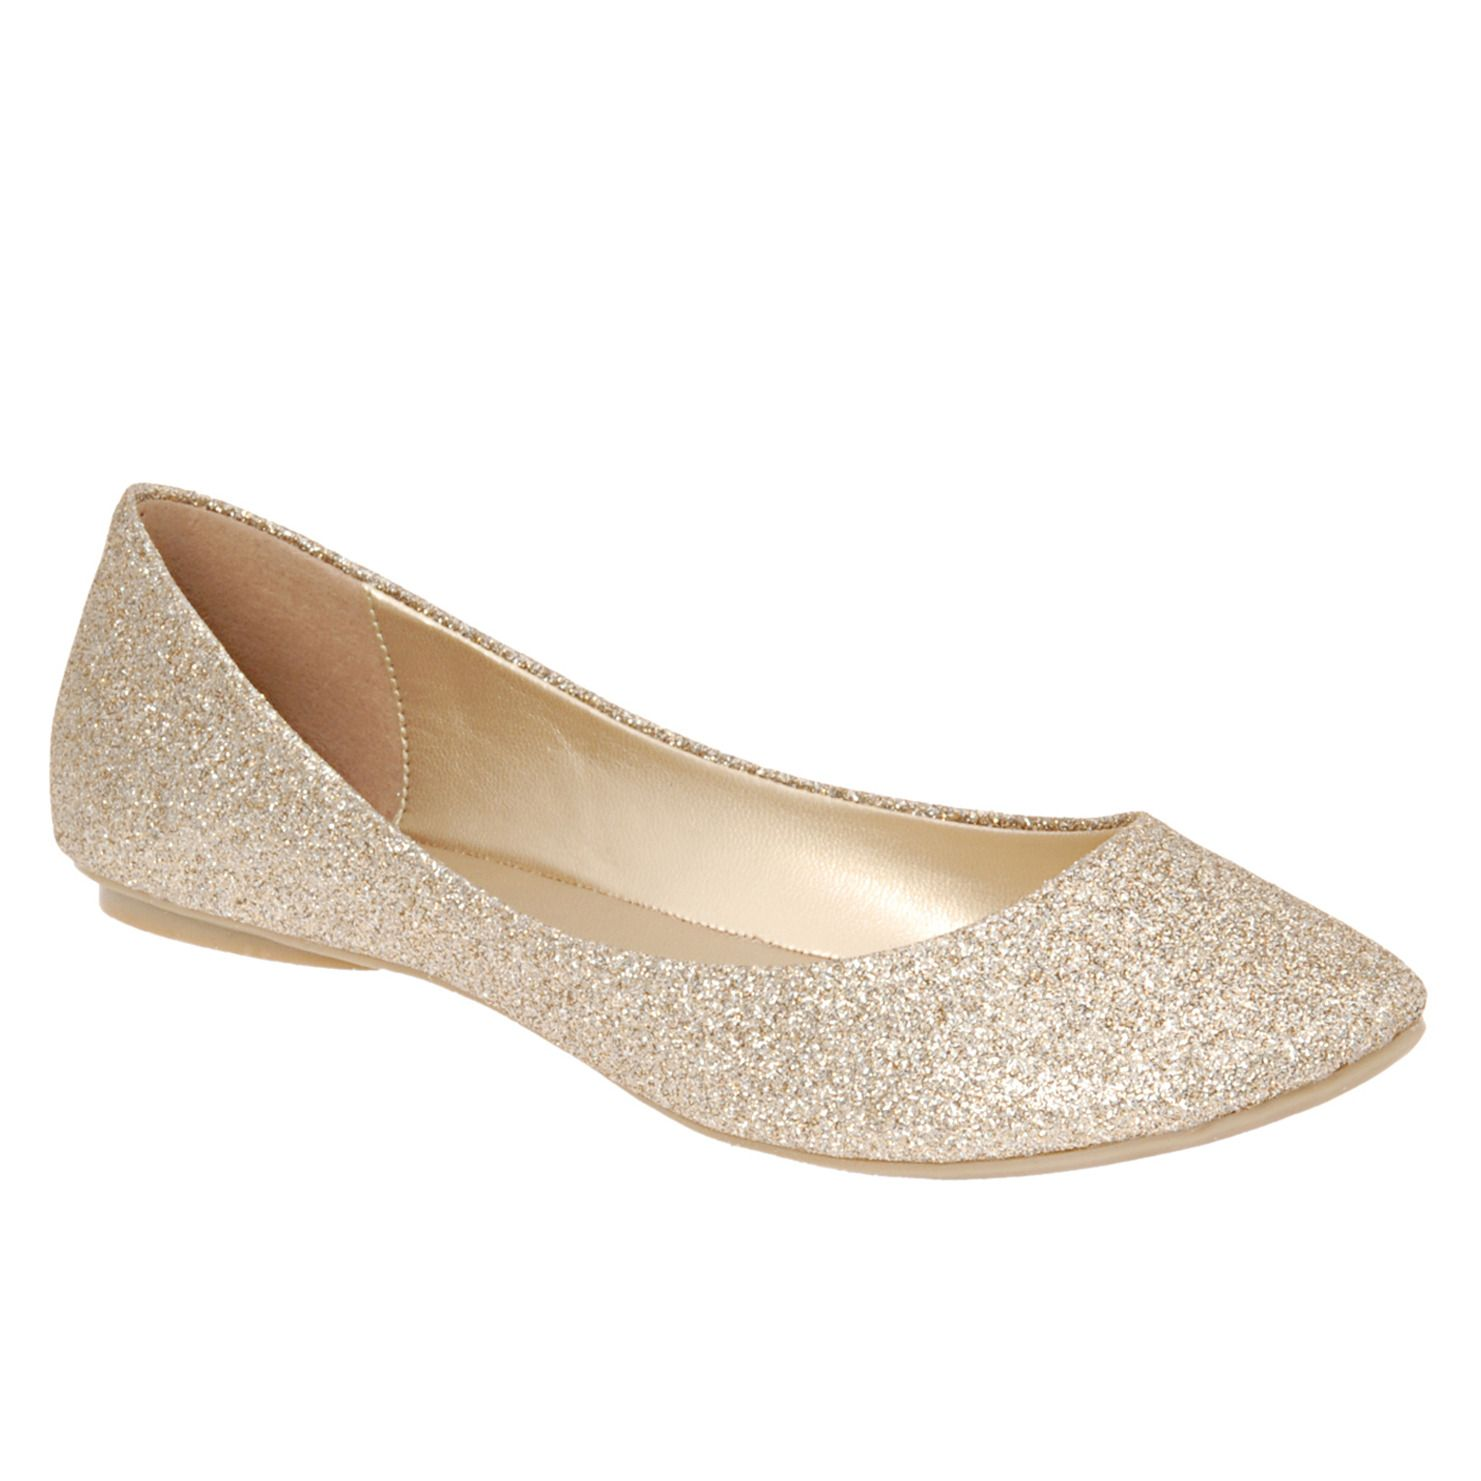 Buy ESPARAZA women's shoes flats at Spring Shoes. Free Shipping!